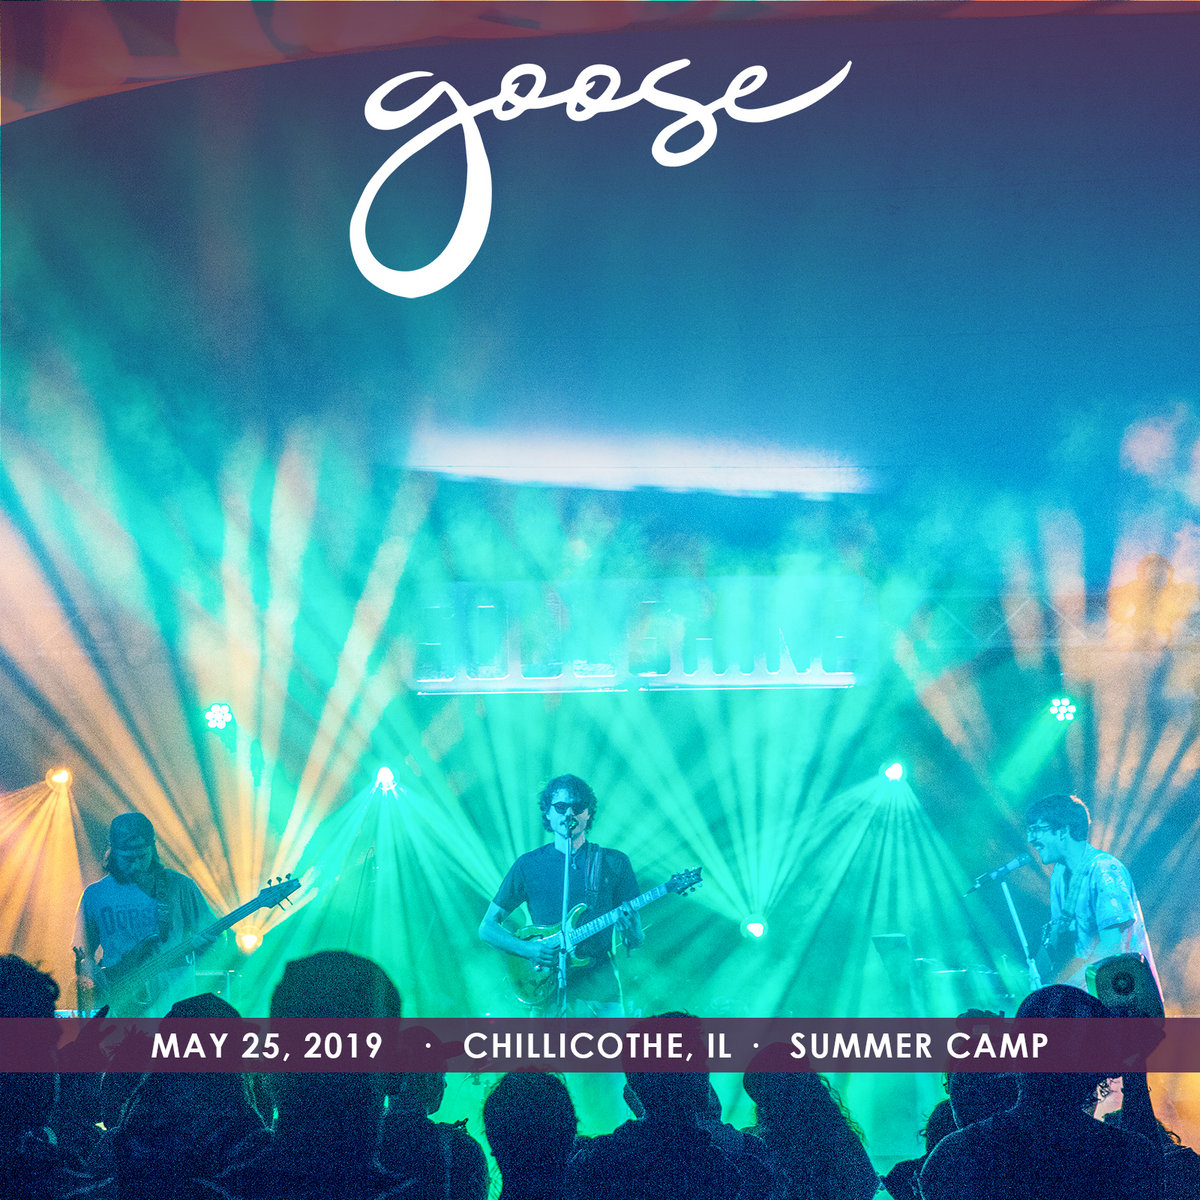 2019/05/25 Summer Camp Music Festival, Chillicothe, IL | Goose